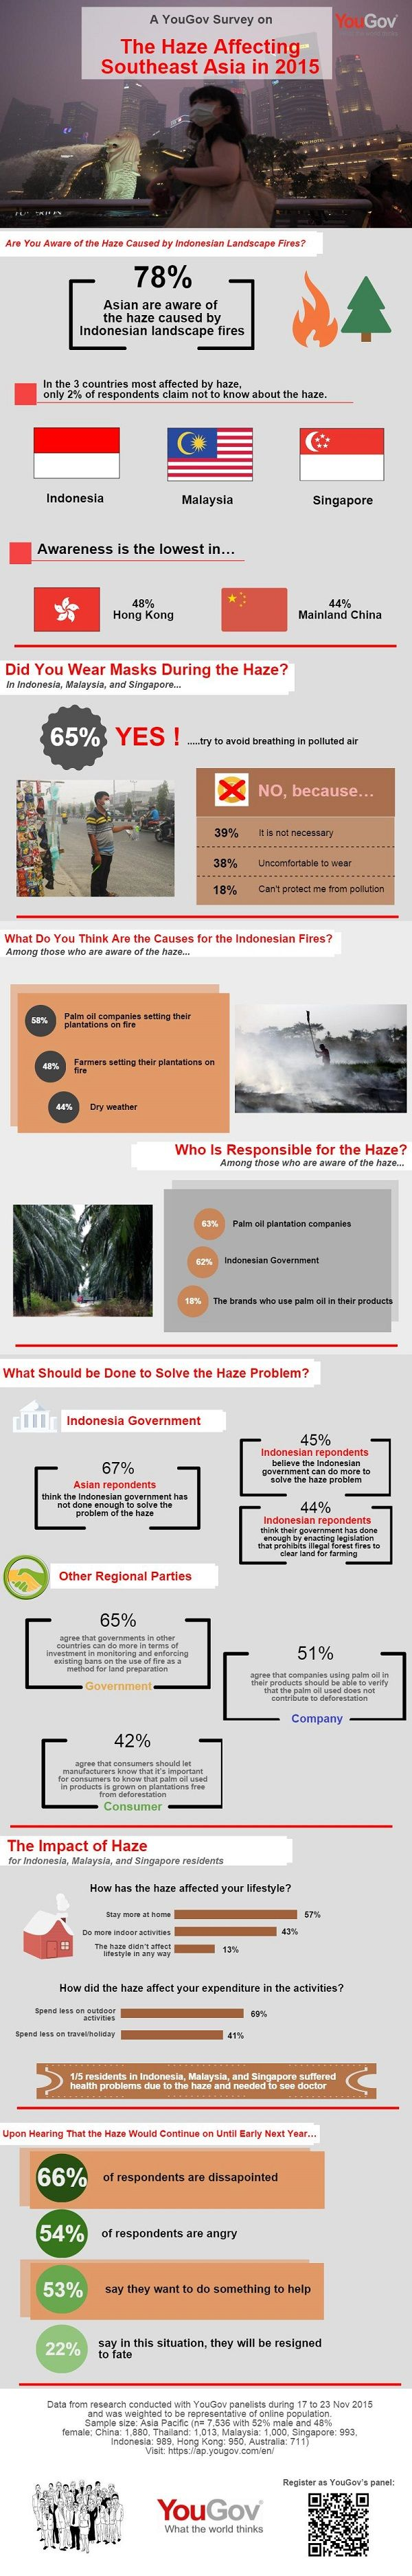 YouGov_The-Haze-affecting-Southeast-Asia_151204